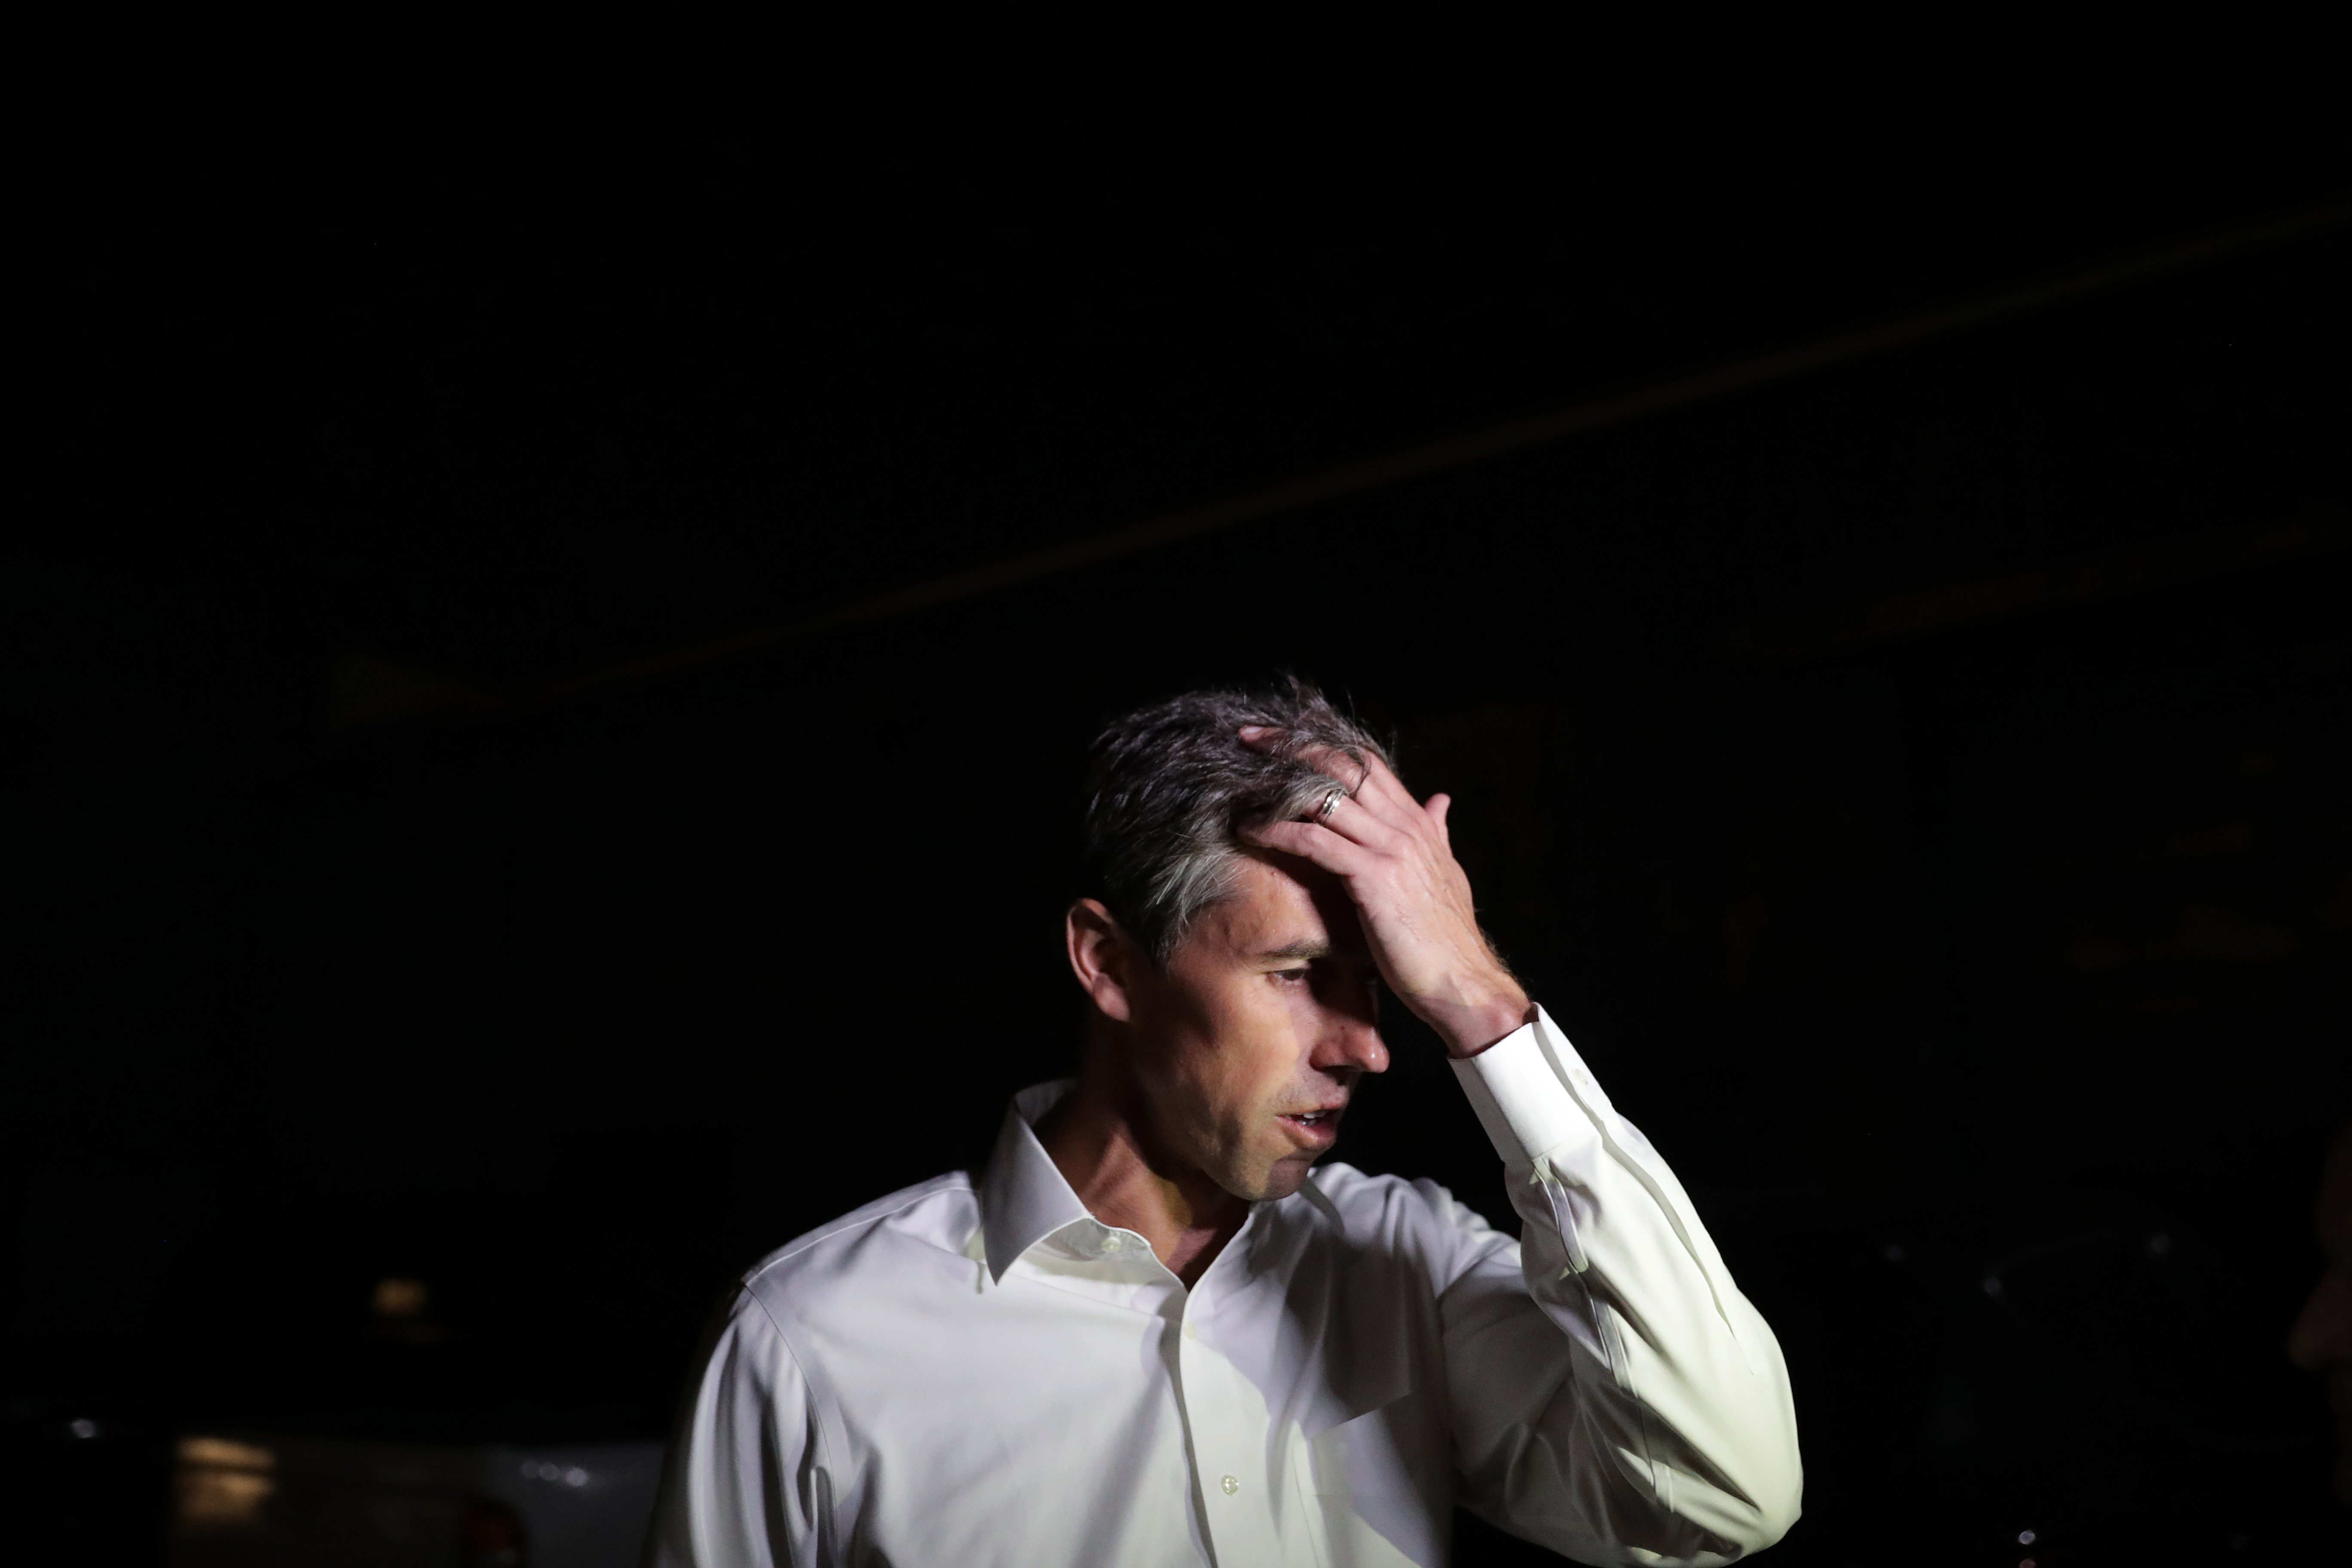 U.S. Senate candidate Rep. Beto O'Rourke talks with reporters before addressing a Blockwalk Celebration at Good Records after a day of door-to-door canvassing November 3, 2018 in Dallas, Texas. (Chip Somodevilla/Getty Images)